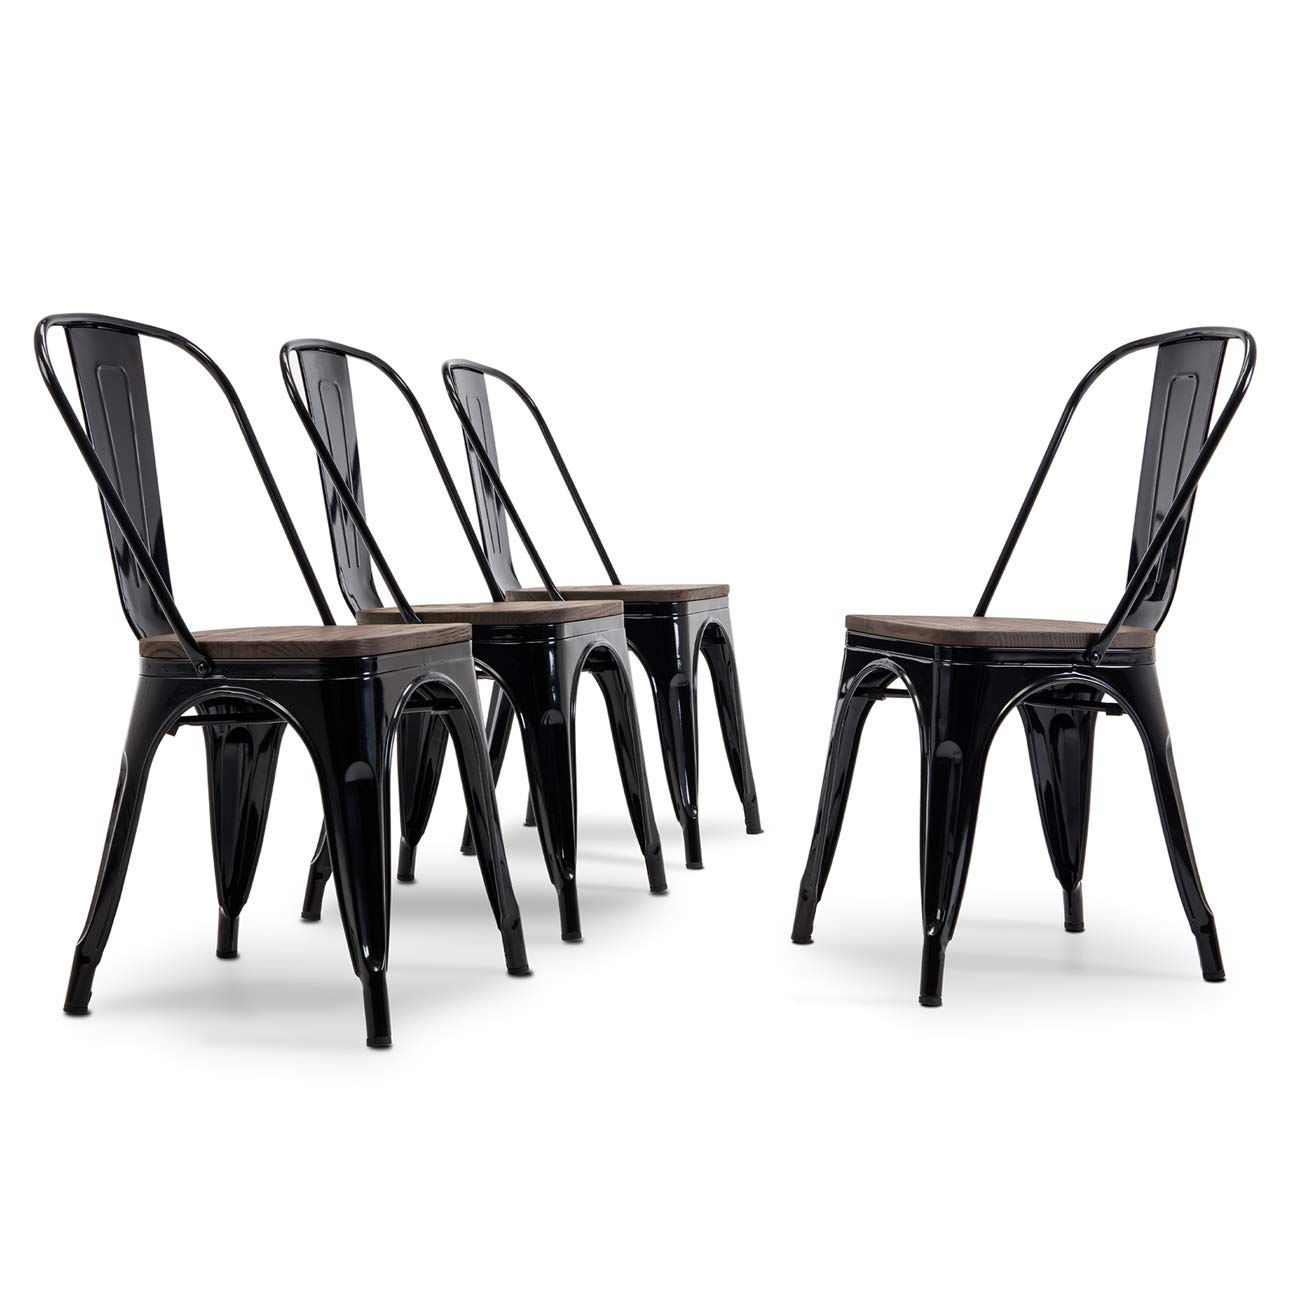 Belleze Modern Style Metal Industrial Stackable Bistro Dining Chairs Set of 4 Wood Seat Cafe Bar Restaurant Stool Black